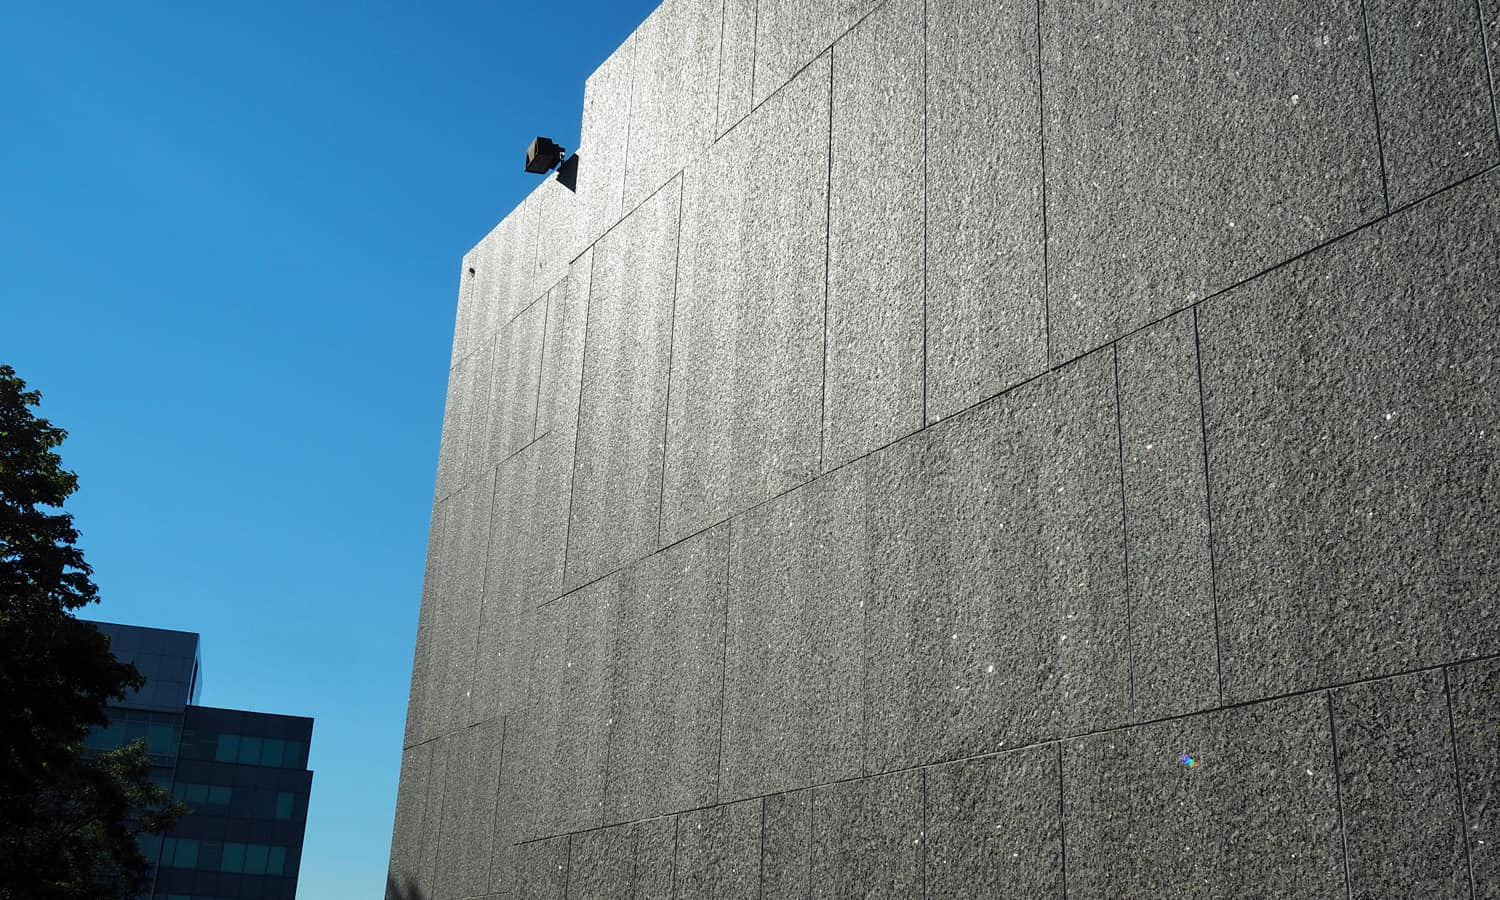 Detail of the granite cladding in the sunlight